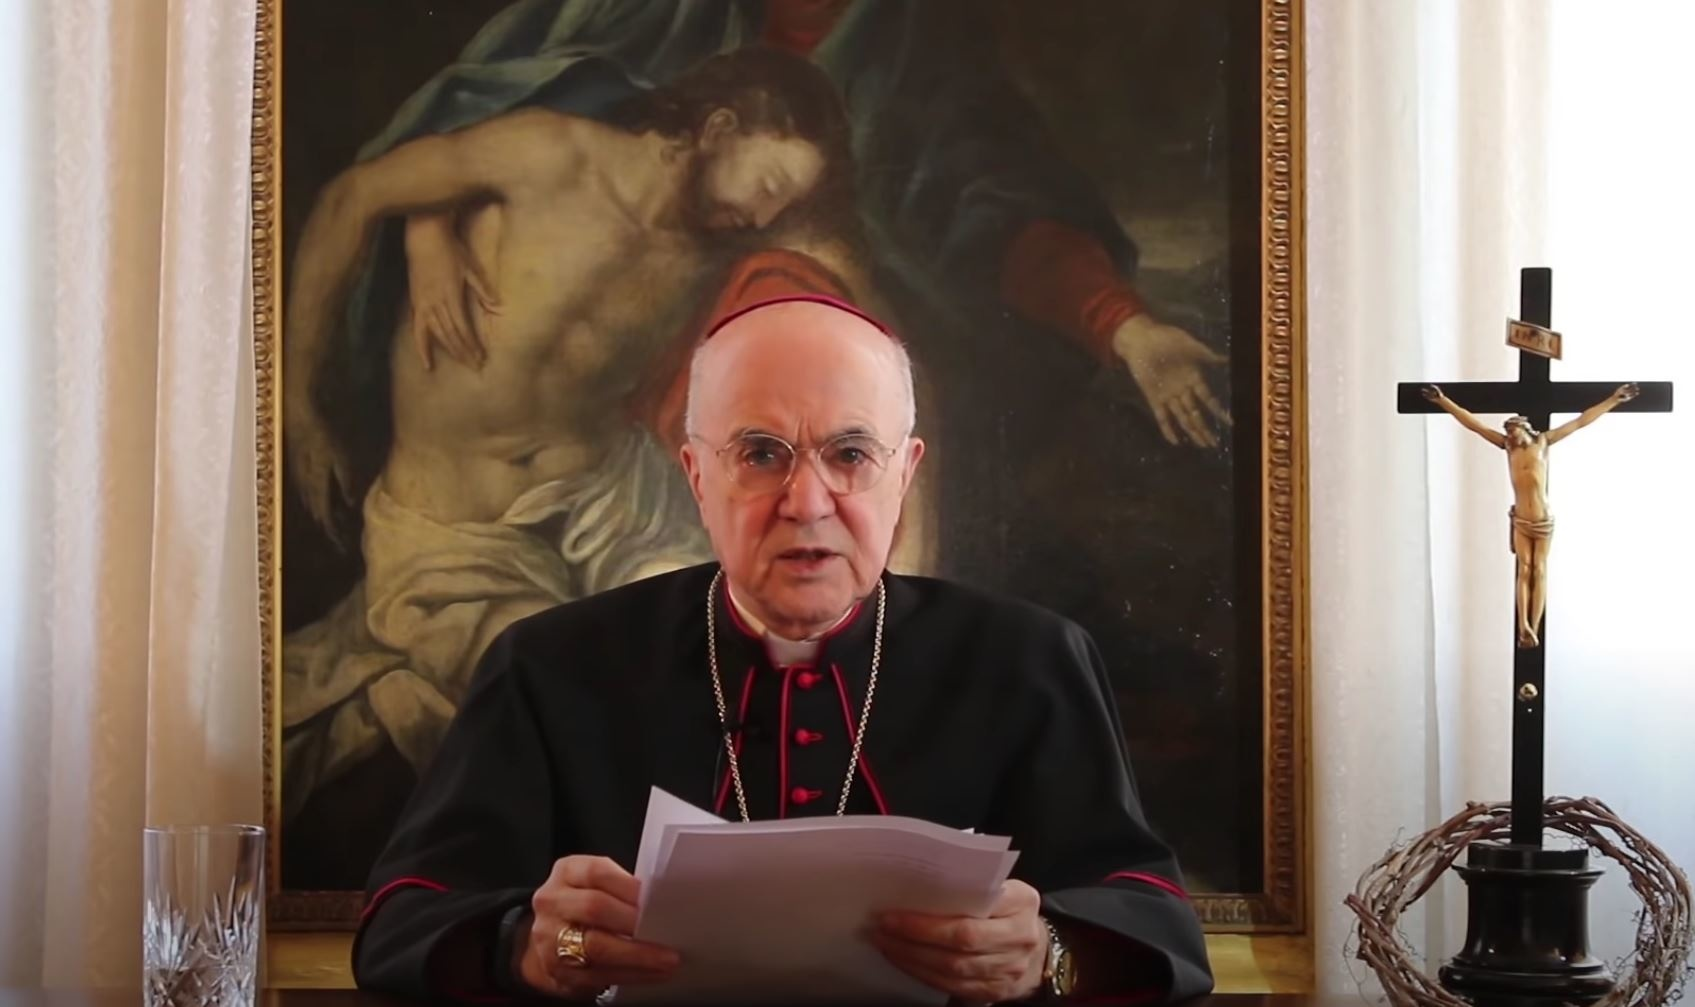 Archbishop Viganò - Open Letter To Confused Priests: Obedience, Resistance, Francis and Vaccines